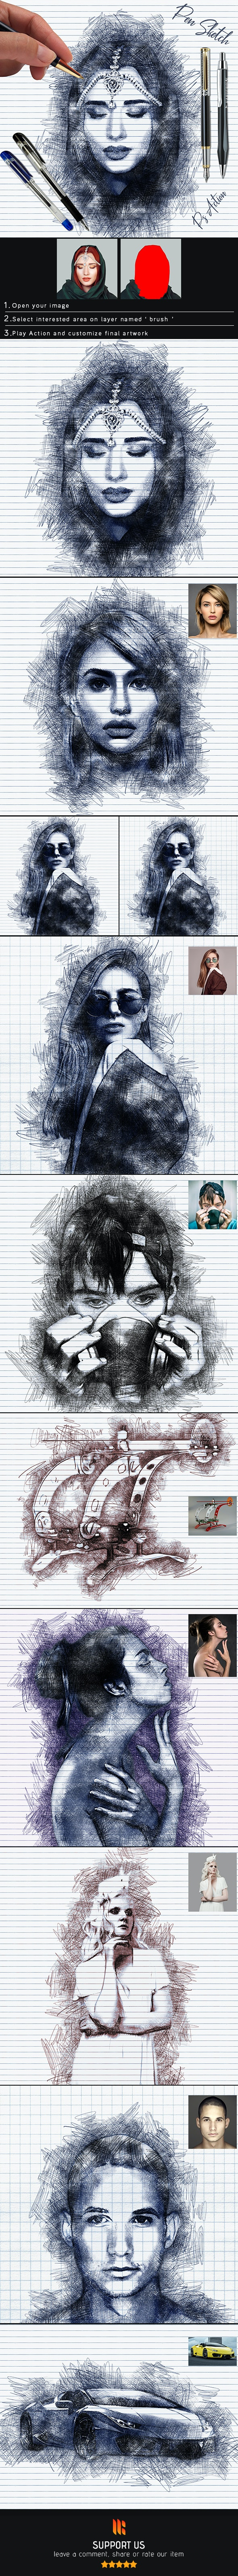 Pen Sketch Photoshop Action - Photo Effects Actions